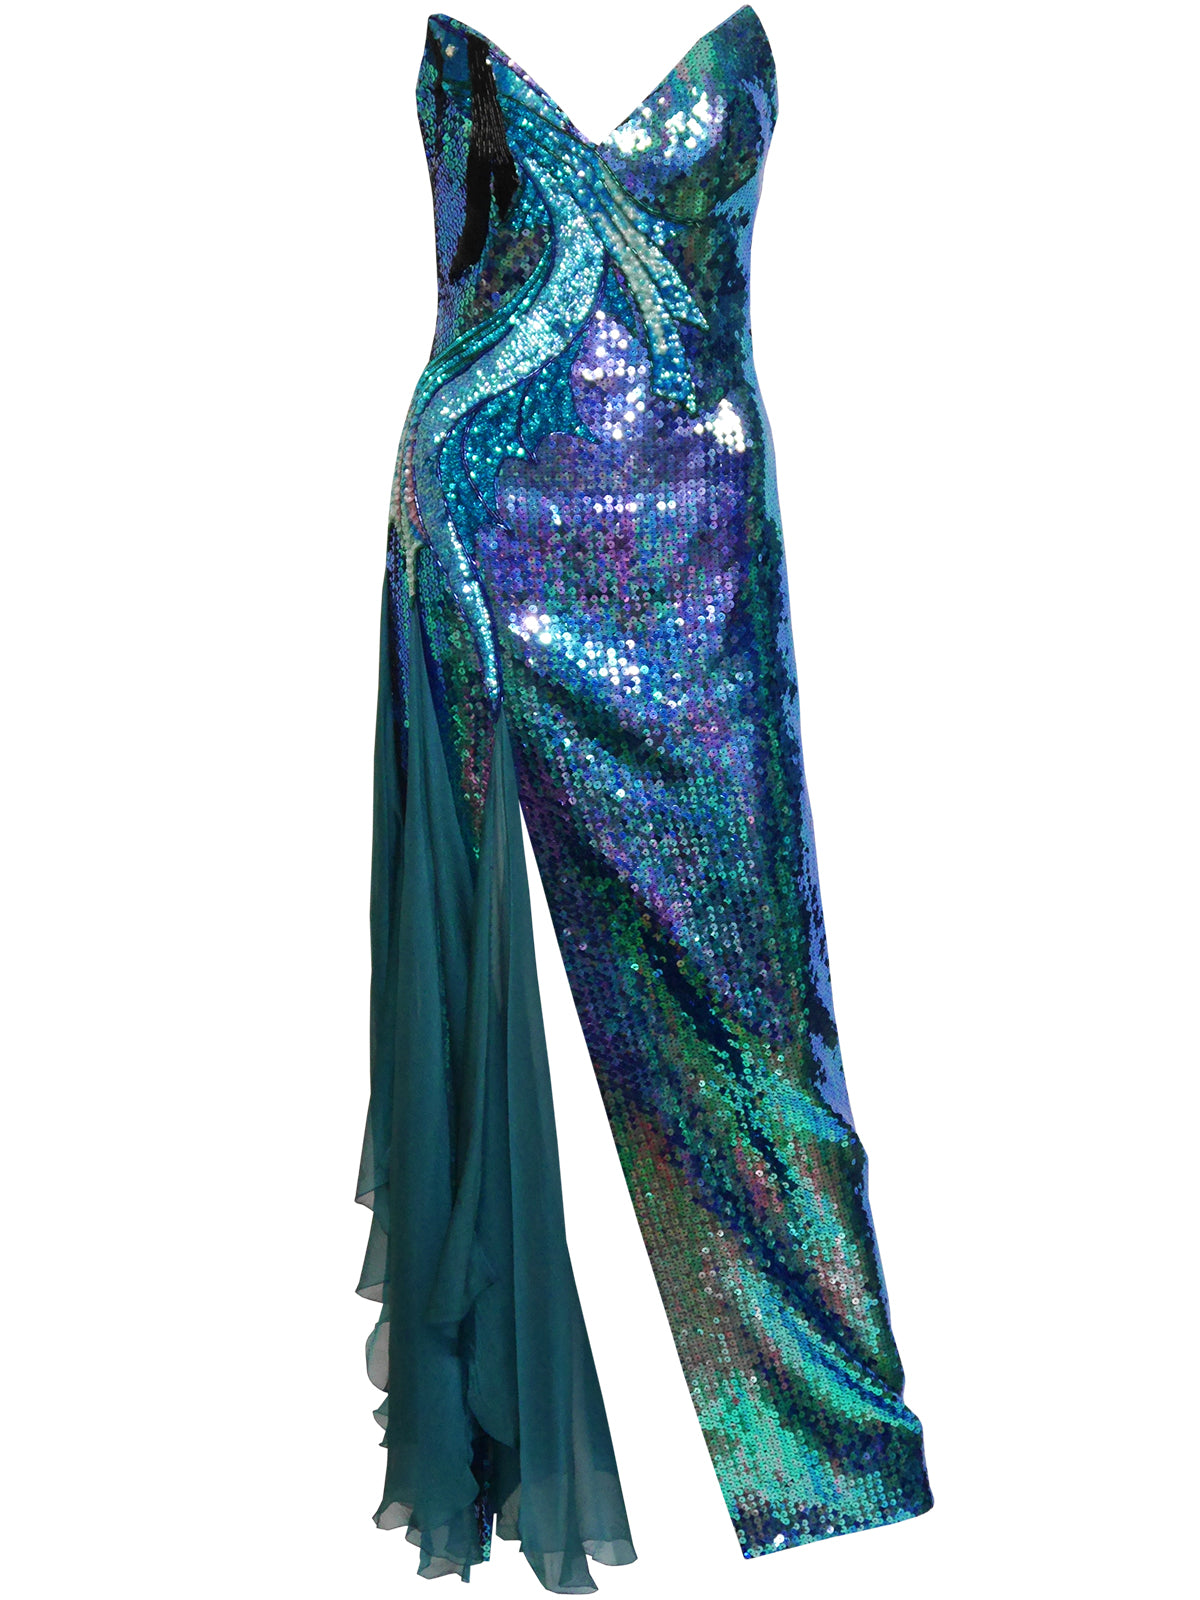 LORIS AZZARO Vintage Fully Sequined Evening Maxi Dress Gown w/ Cape Size S